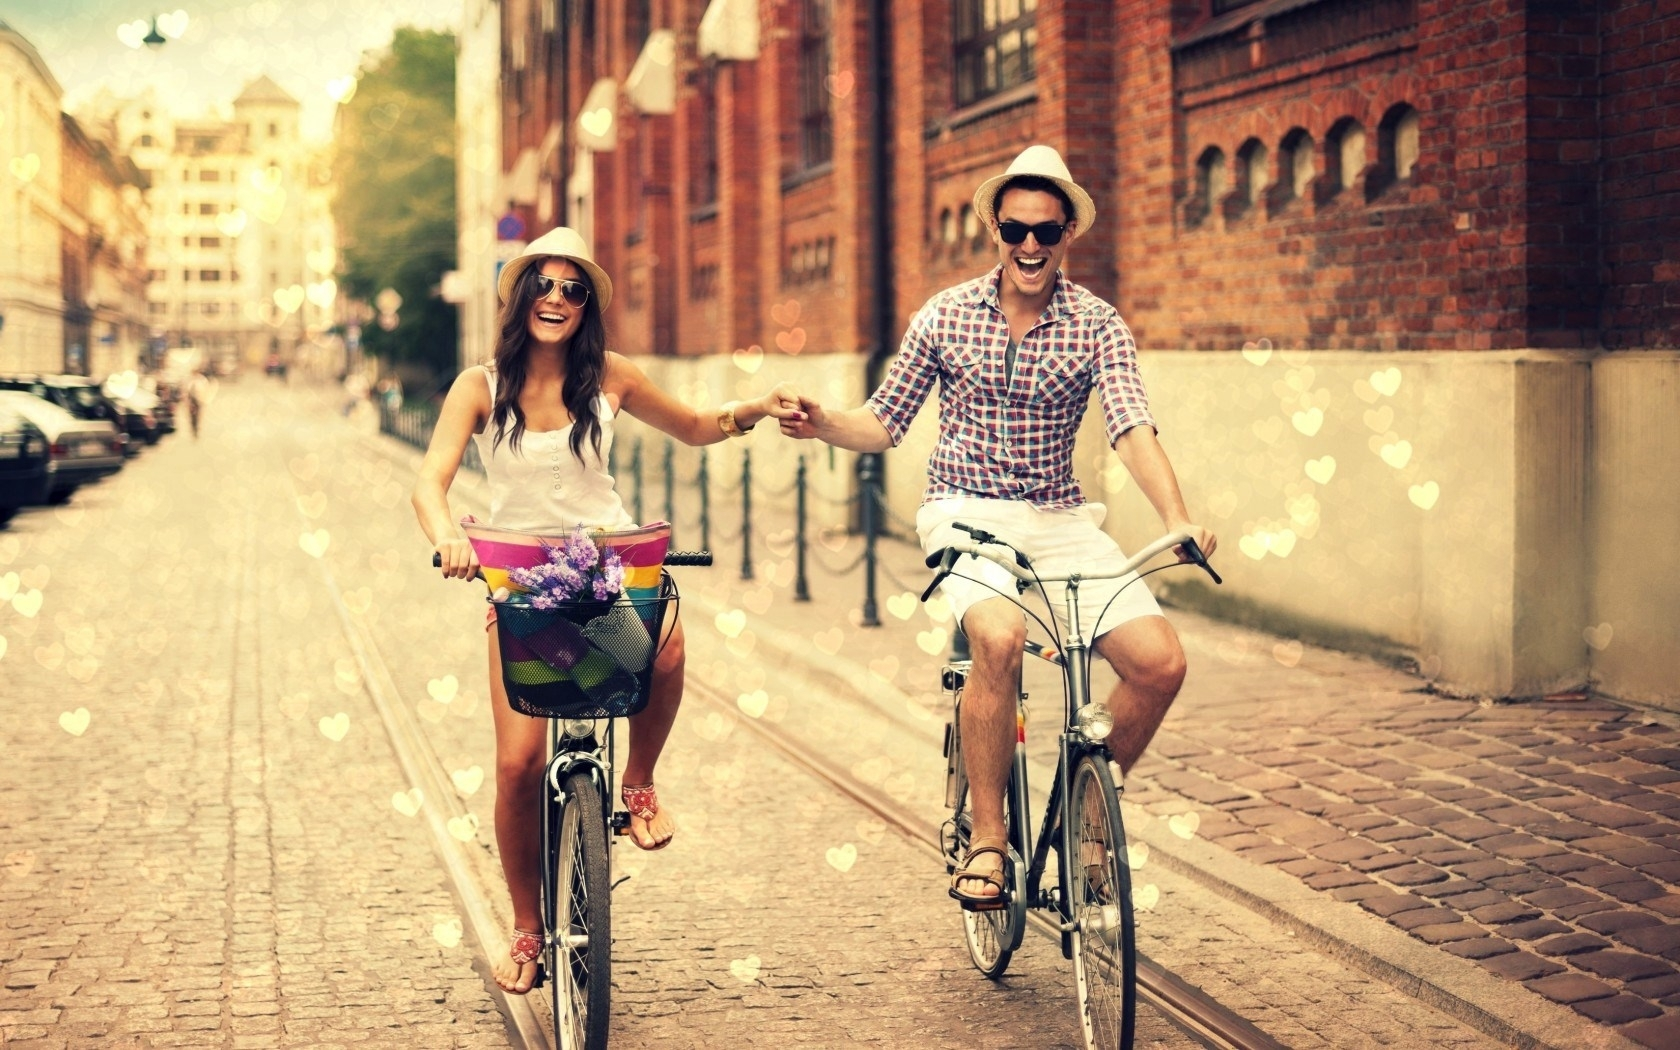 street-boy-girl-bicycles-love-hearts-city-hd-wallpaper | everything